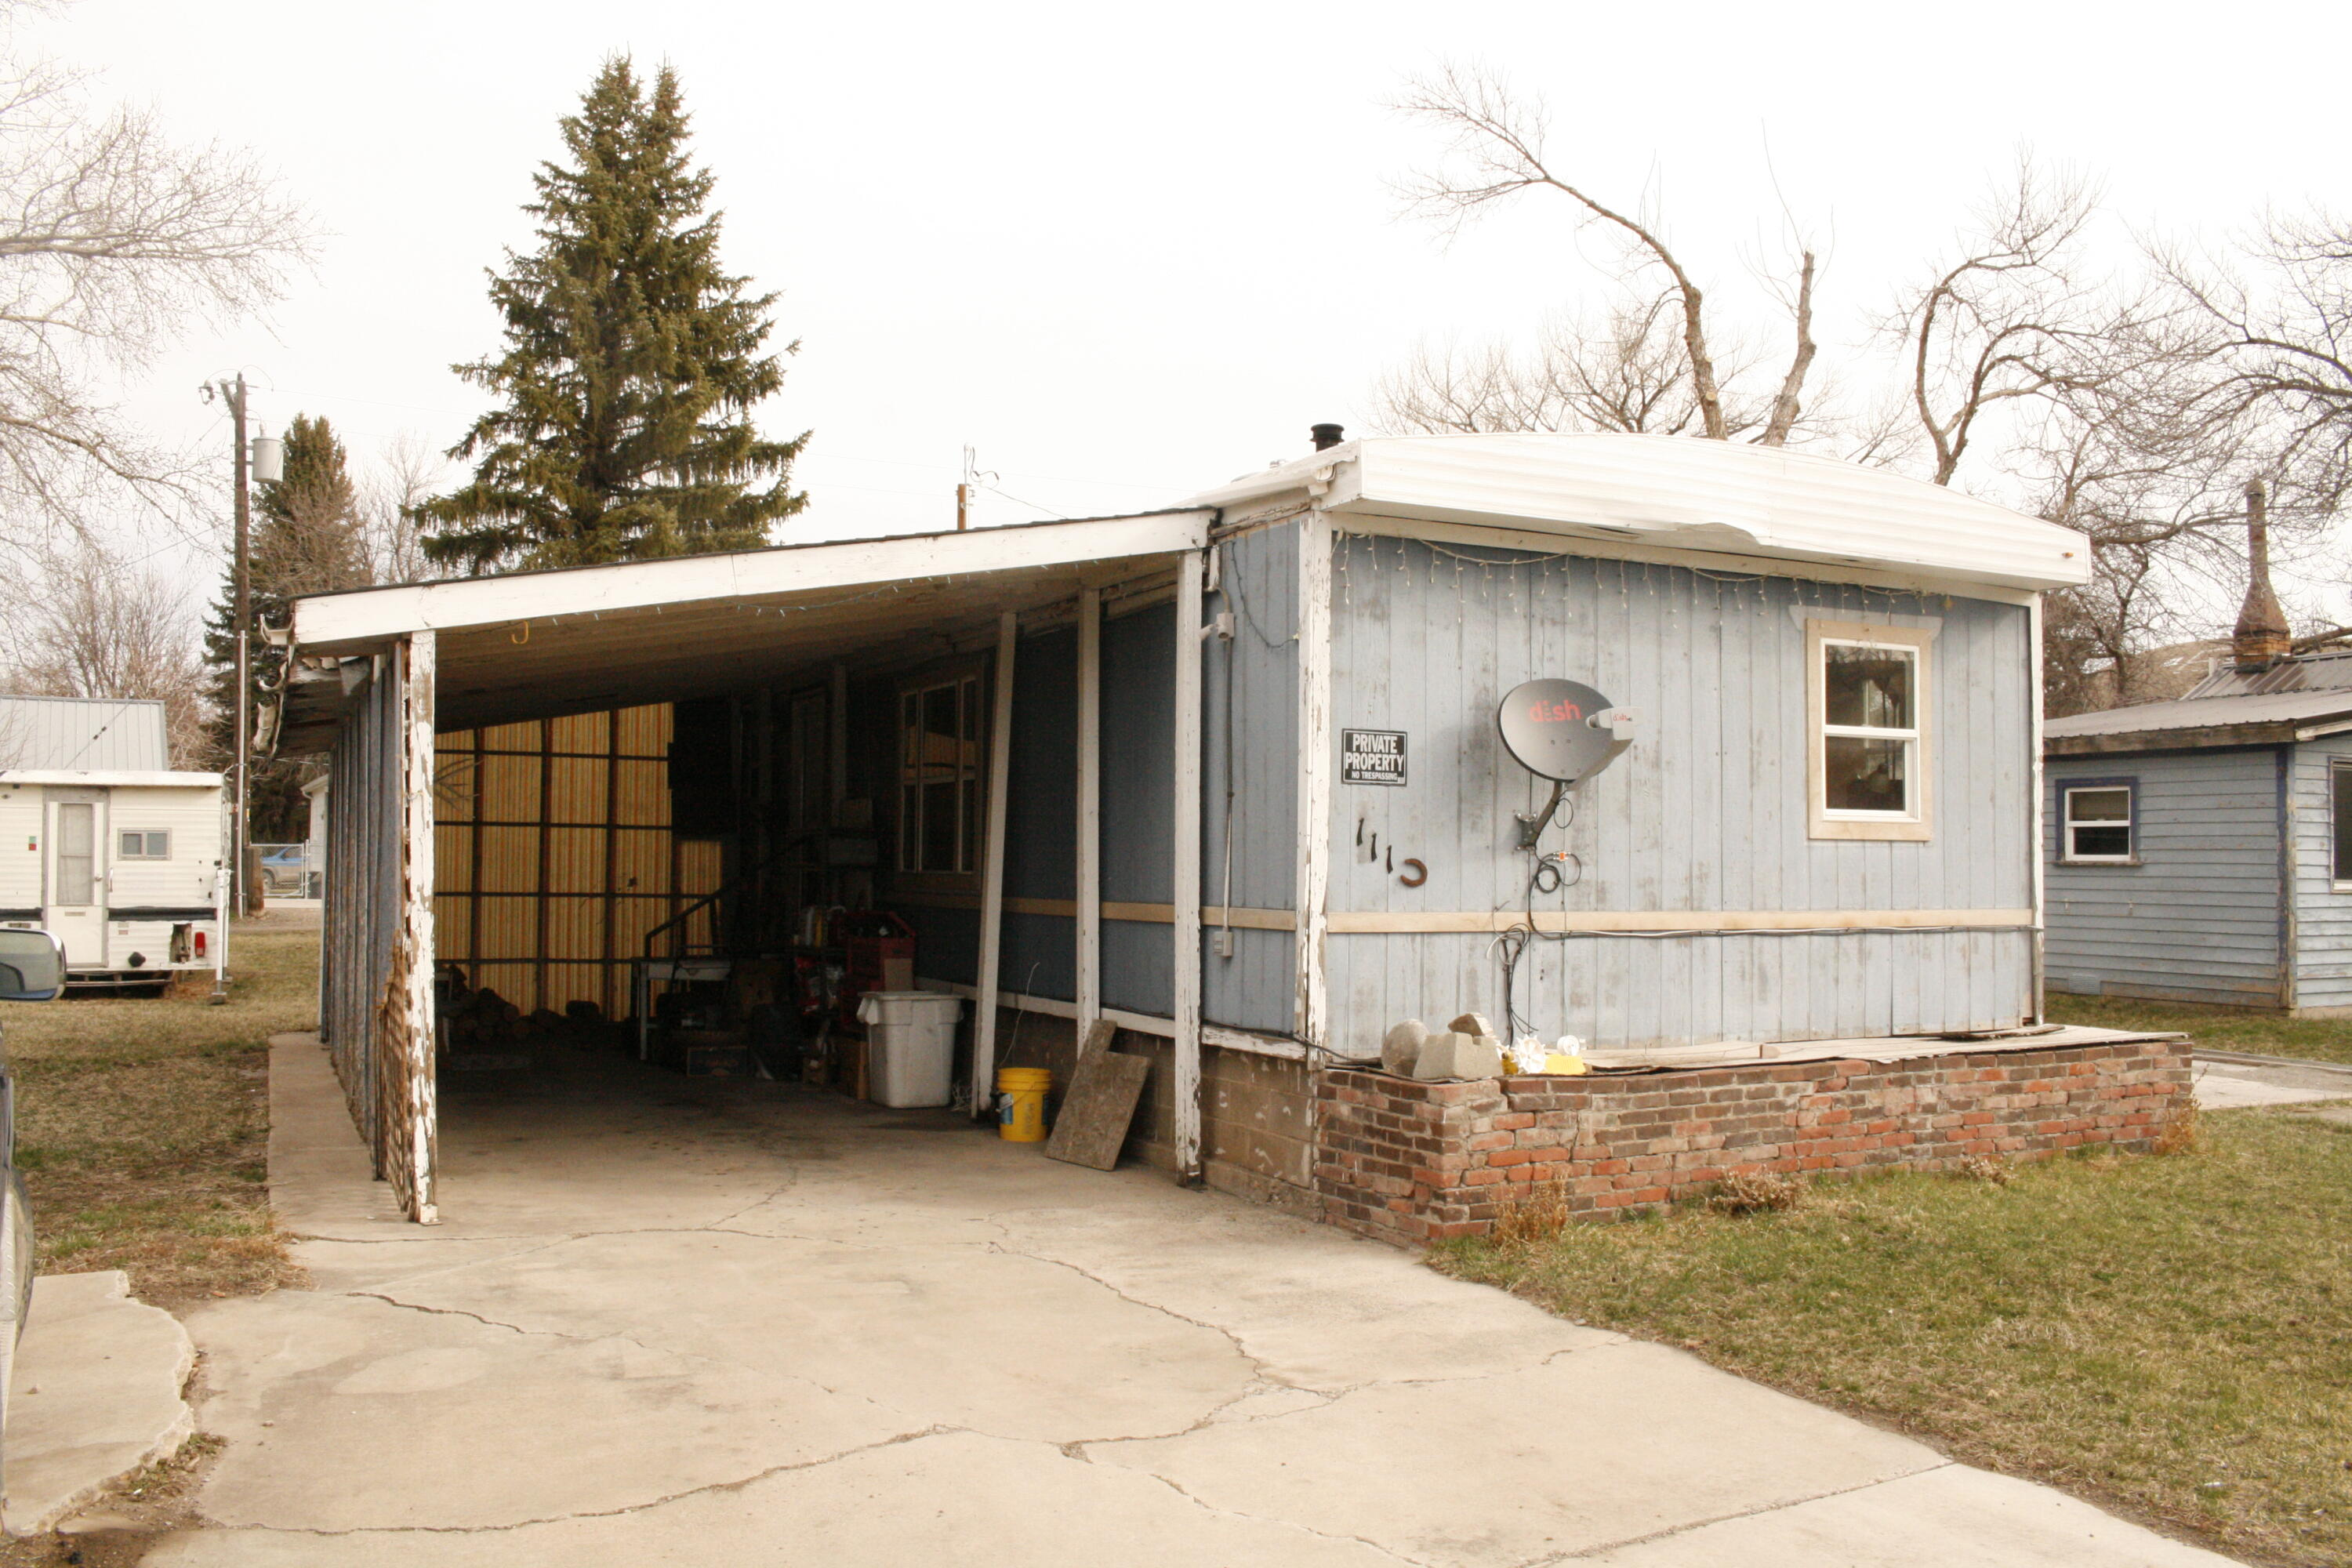 This property consists of just under half an acre with a small studio house and a 3 bedroom 1973 mobil home. Both buildings are in need of much TLC.